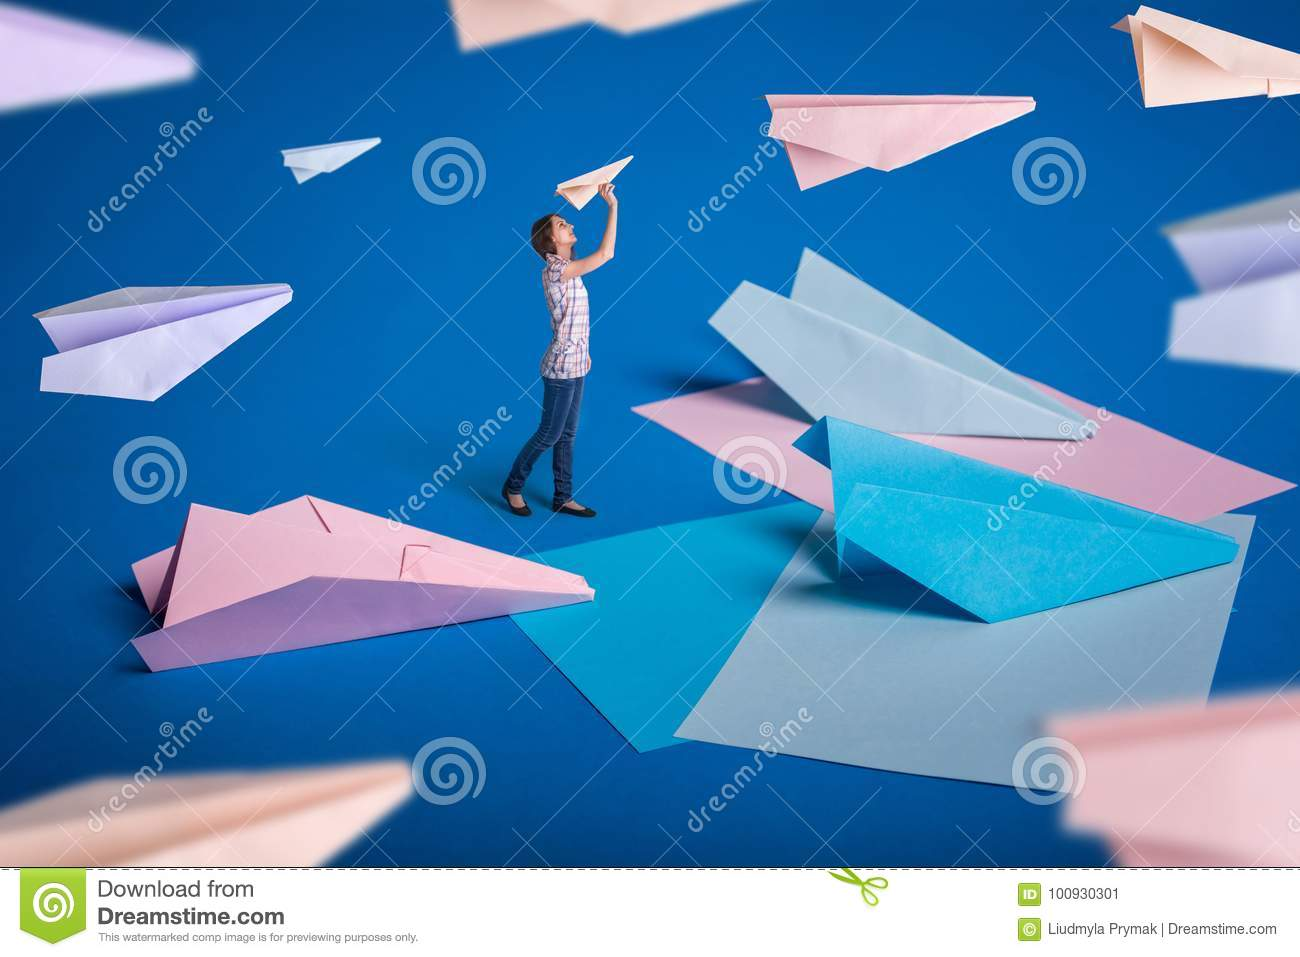 creative surrealism design with origami paper planes young girl let